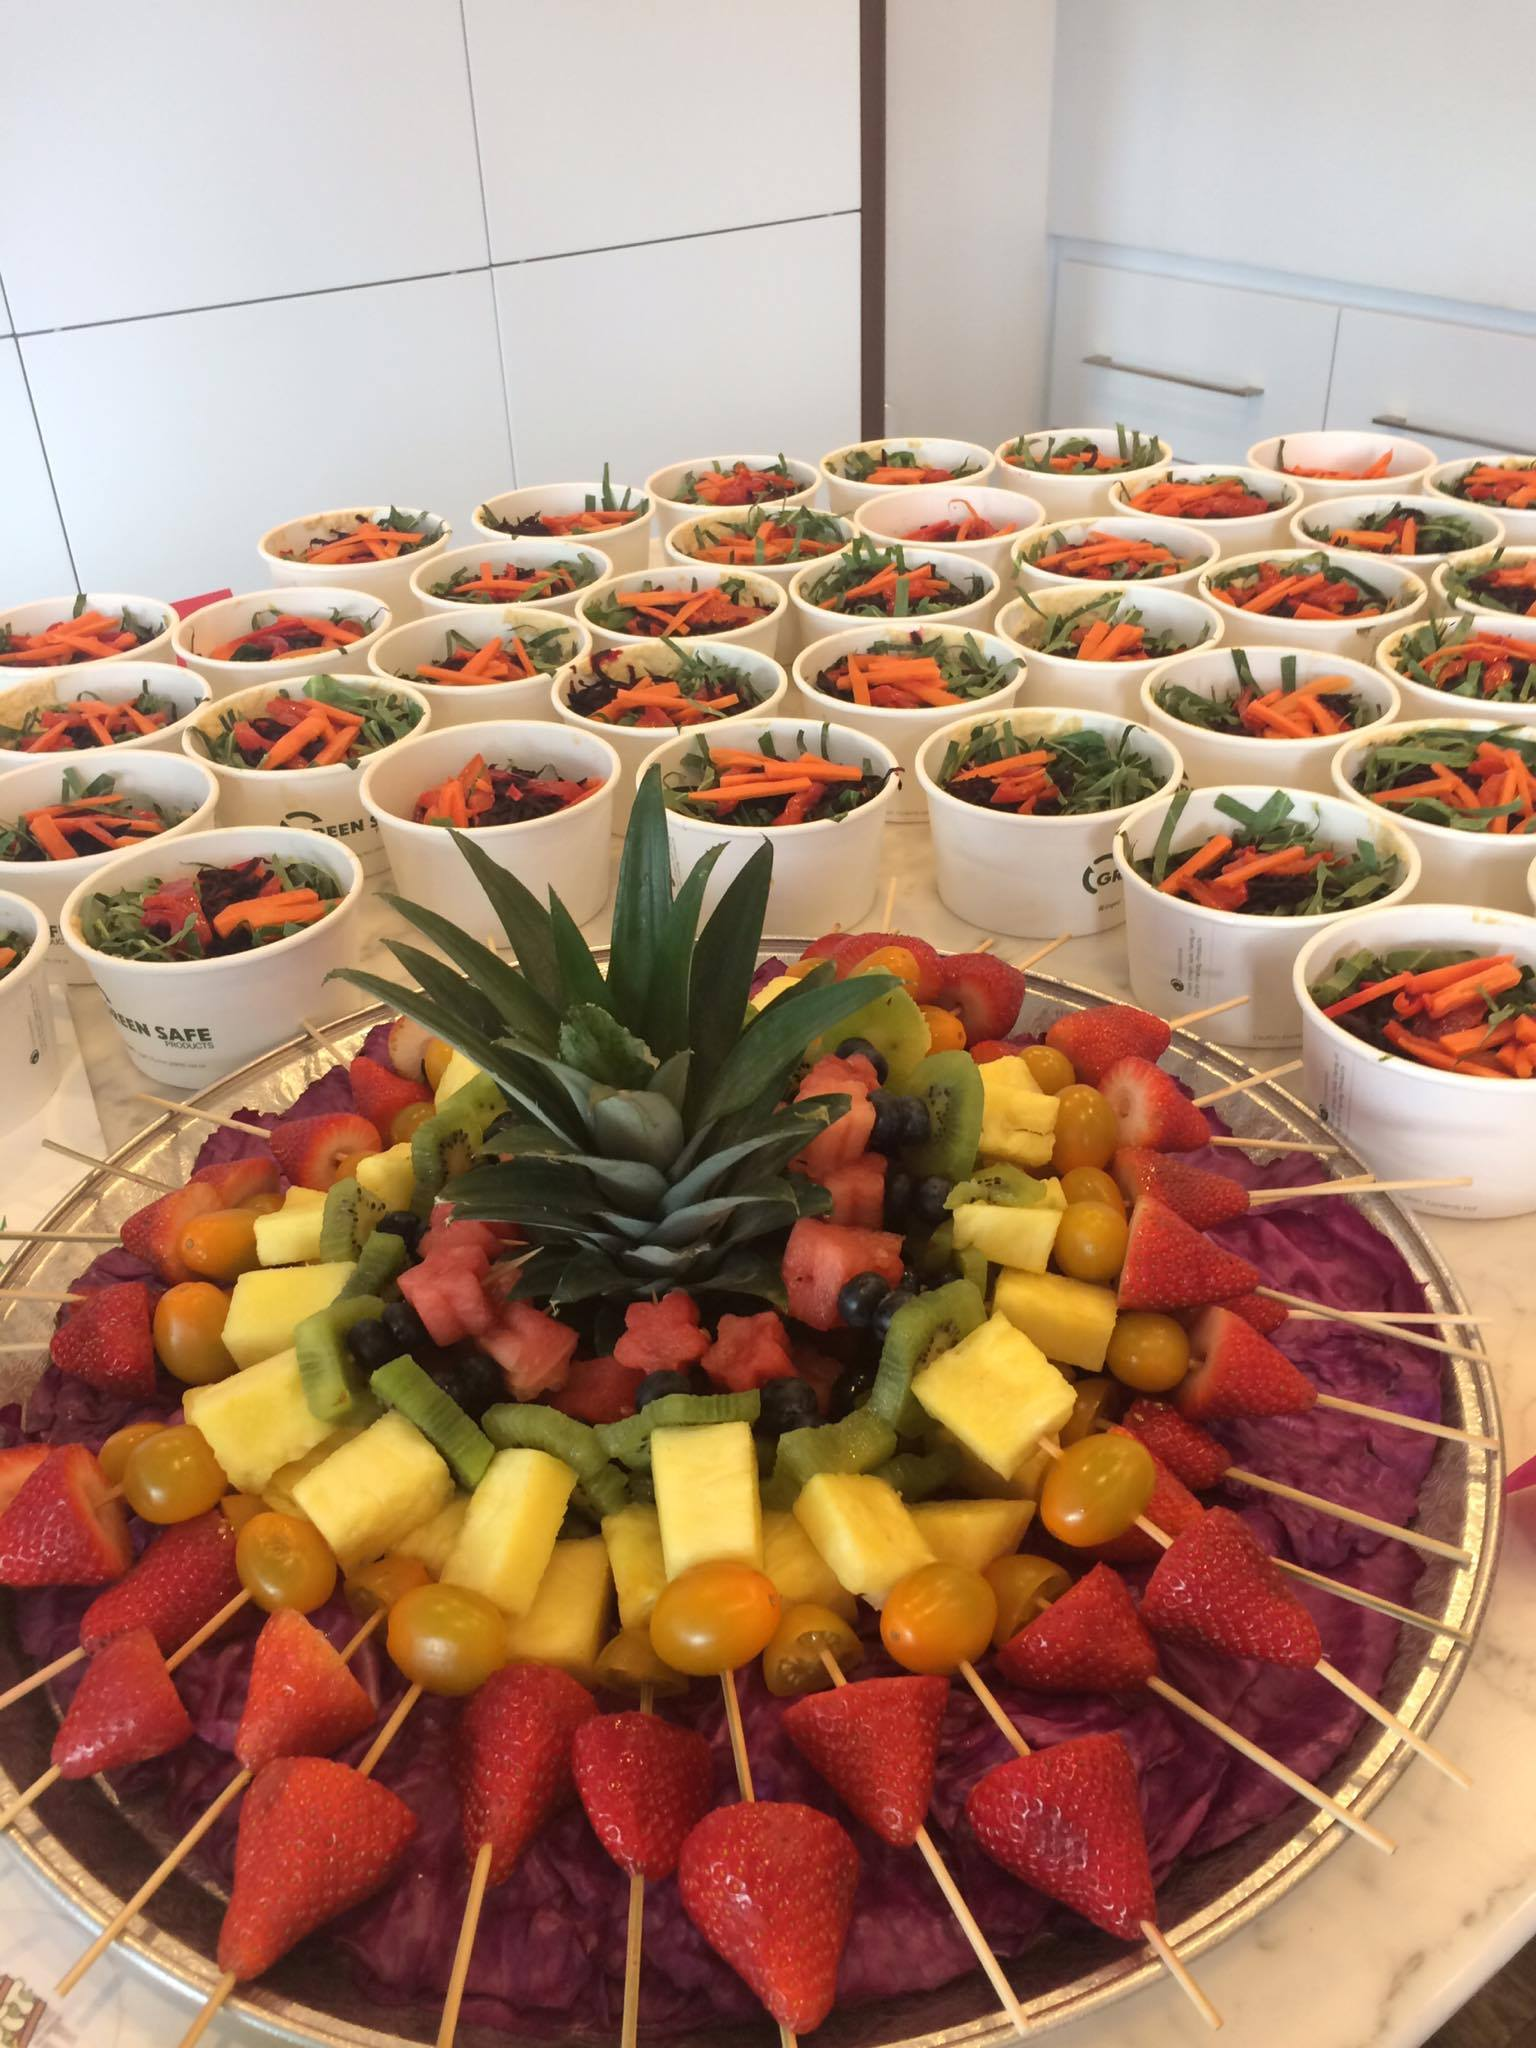 salad-fruit-skewers.jpg